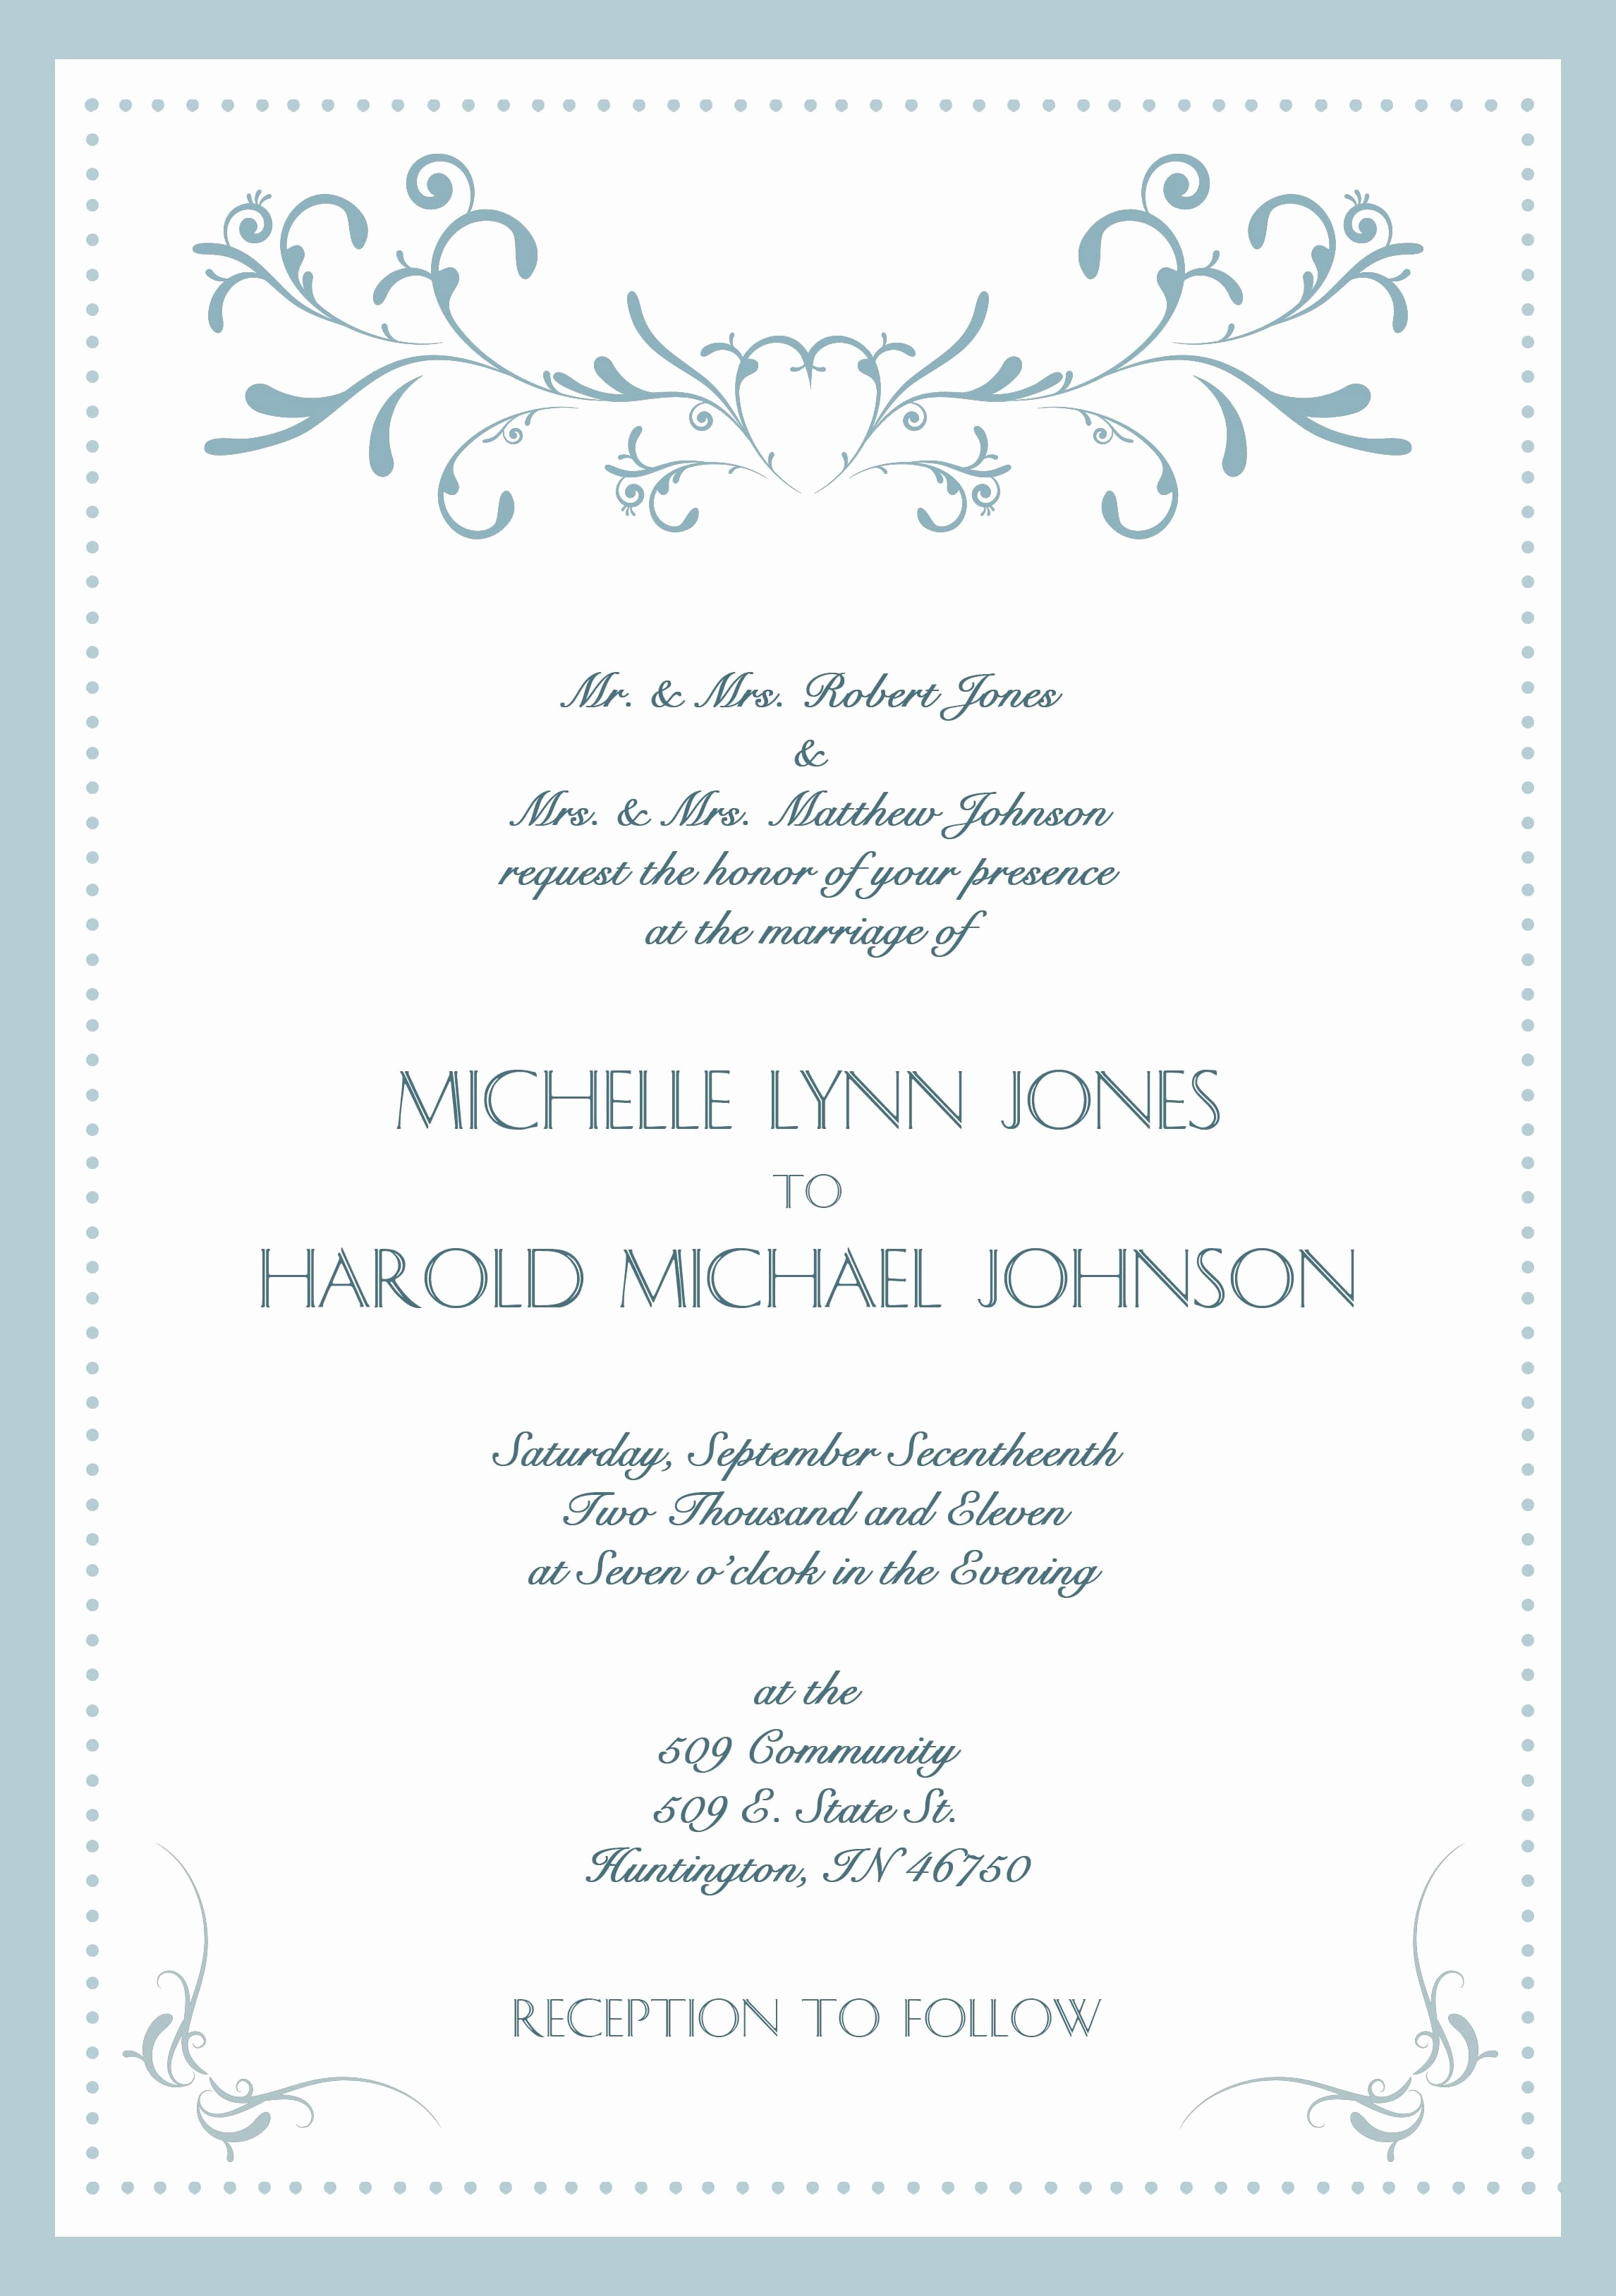 Wedding Invite Template Word Fresh Wedding Invitation Card Template Word